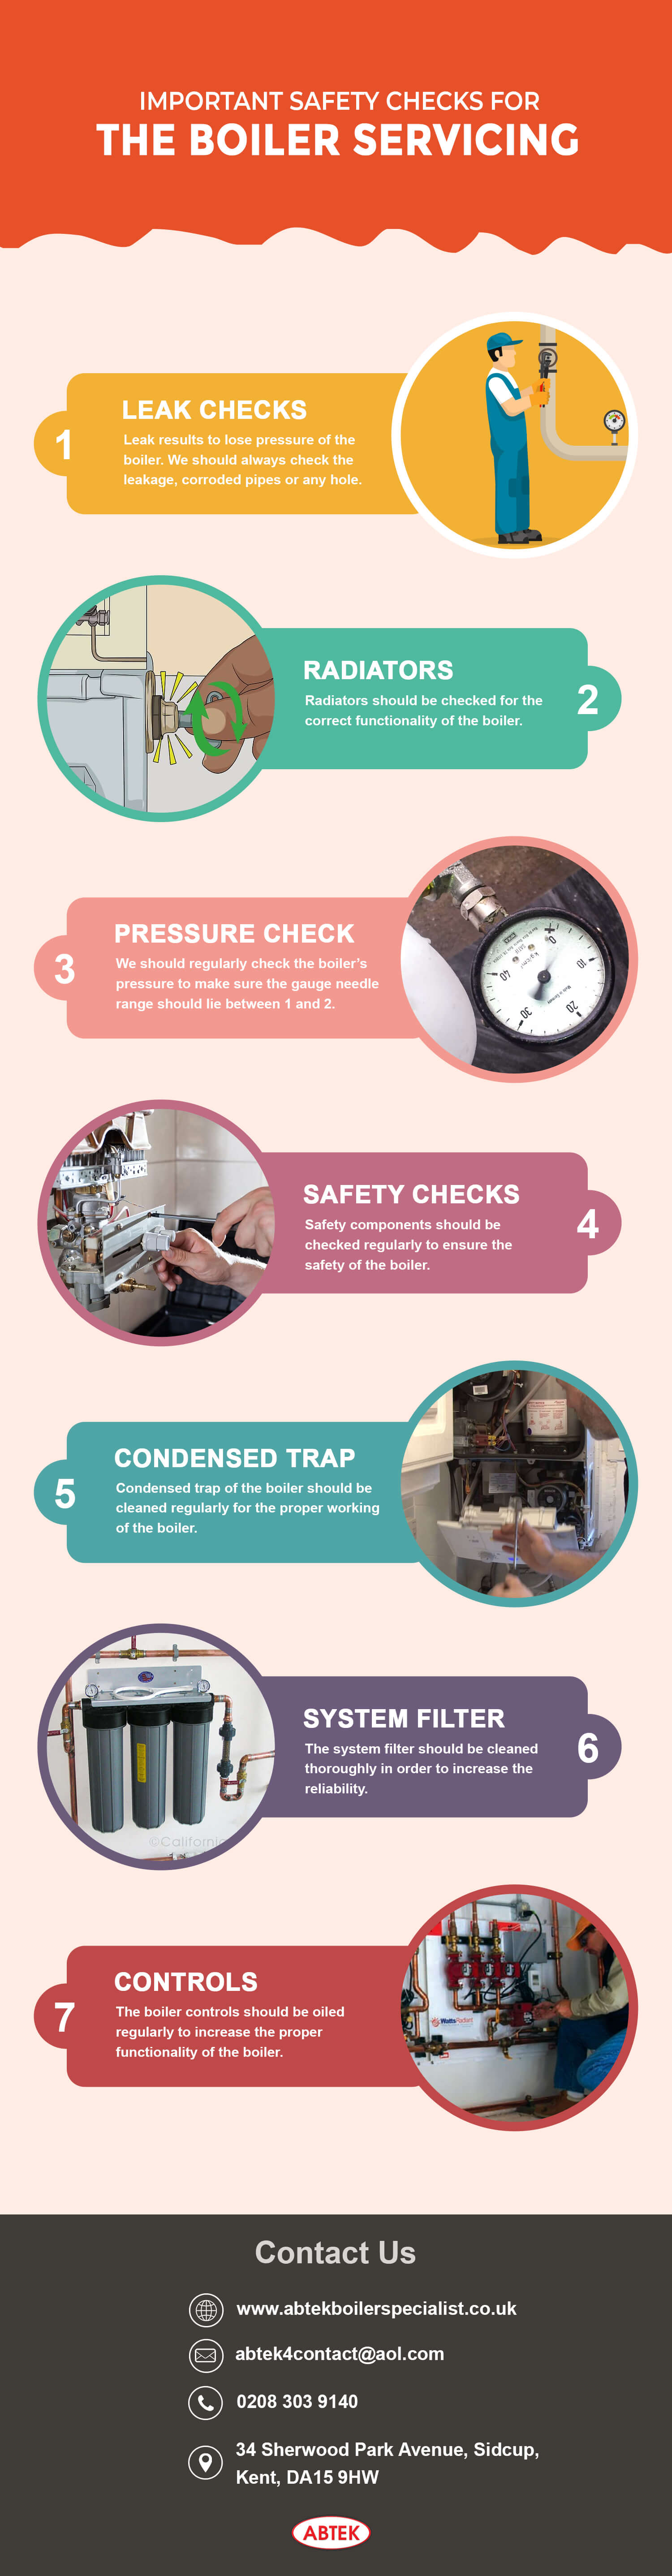 Checkout-Top-Safety-Checks-for-Boiler-Servicing-infographic-plaza